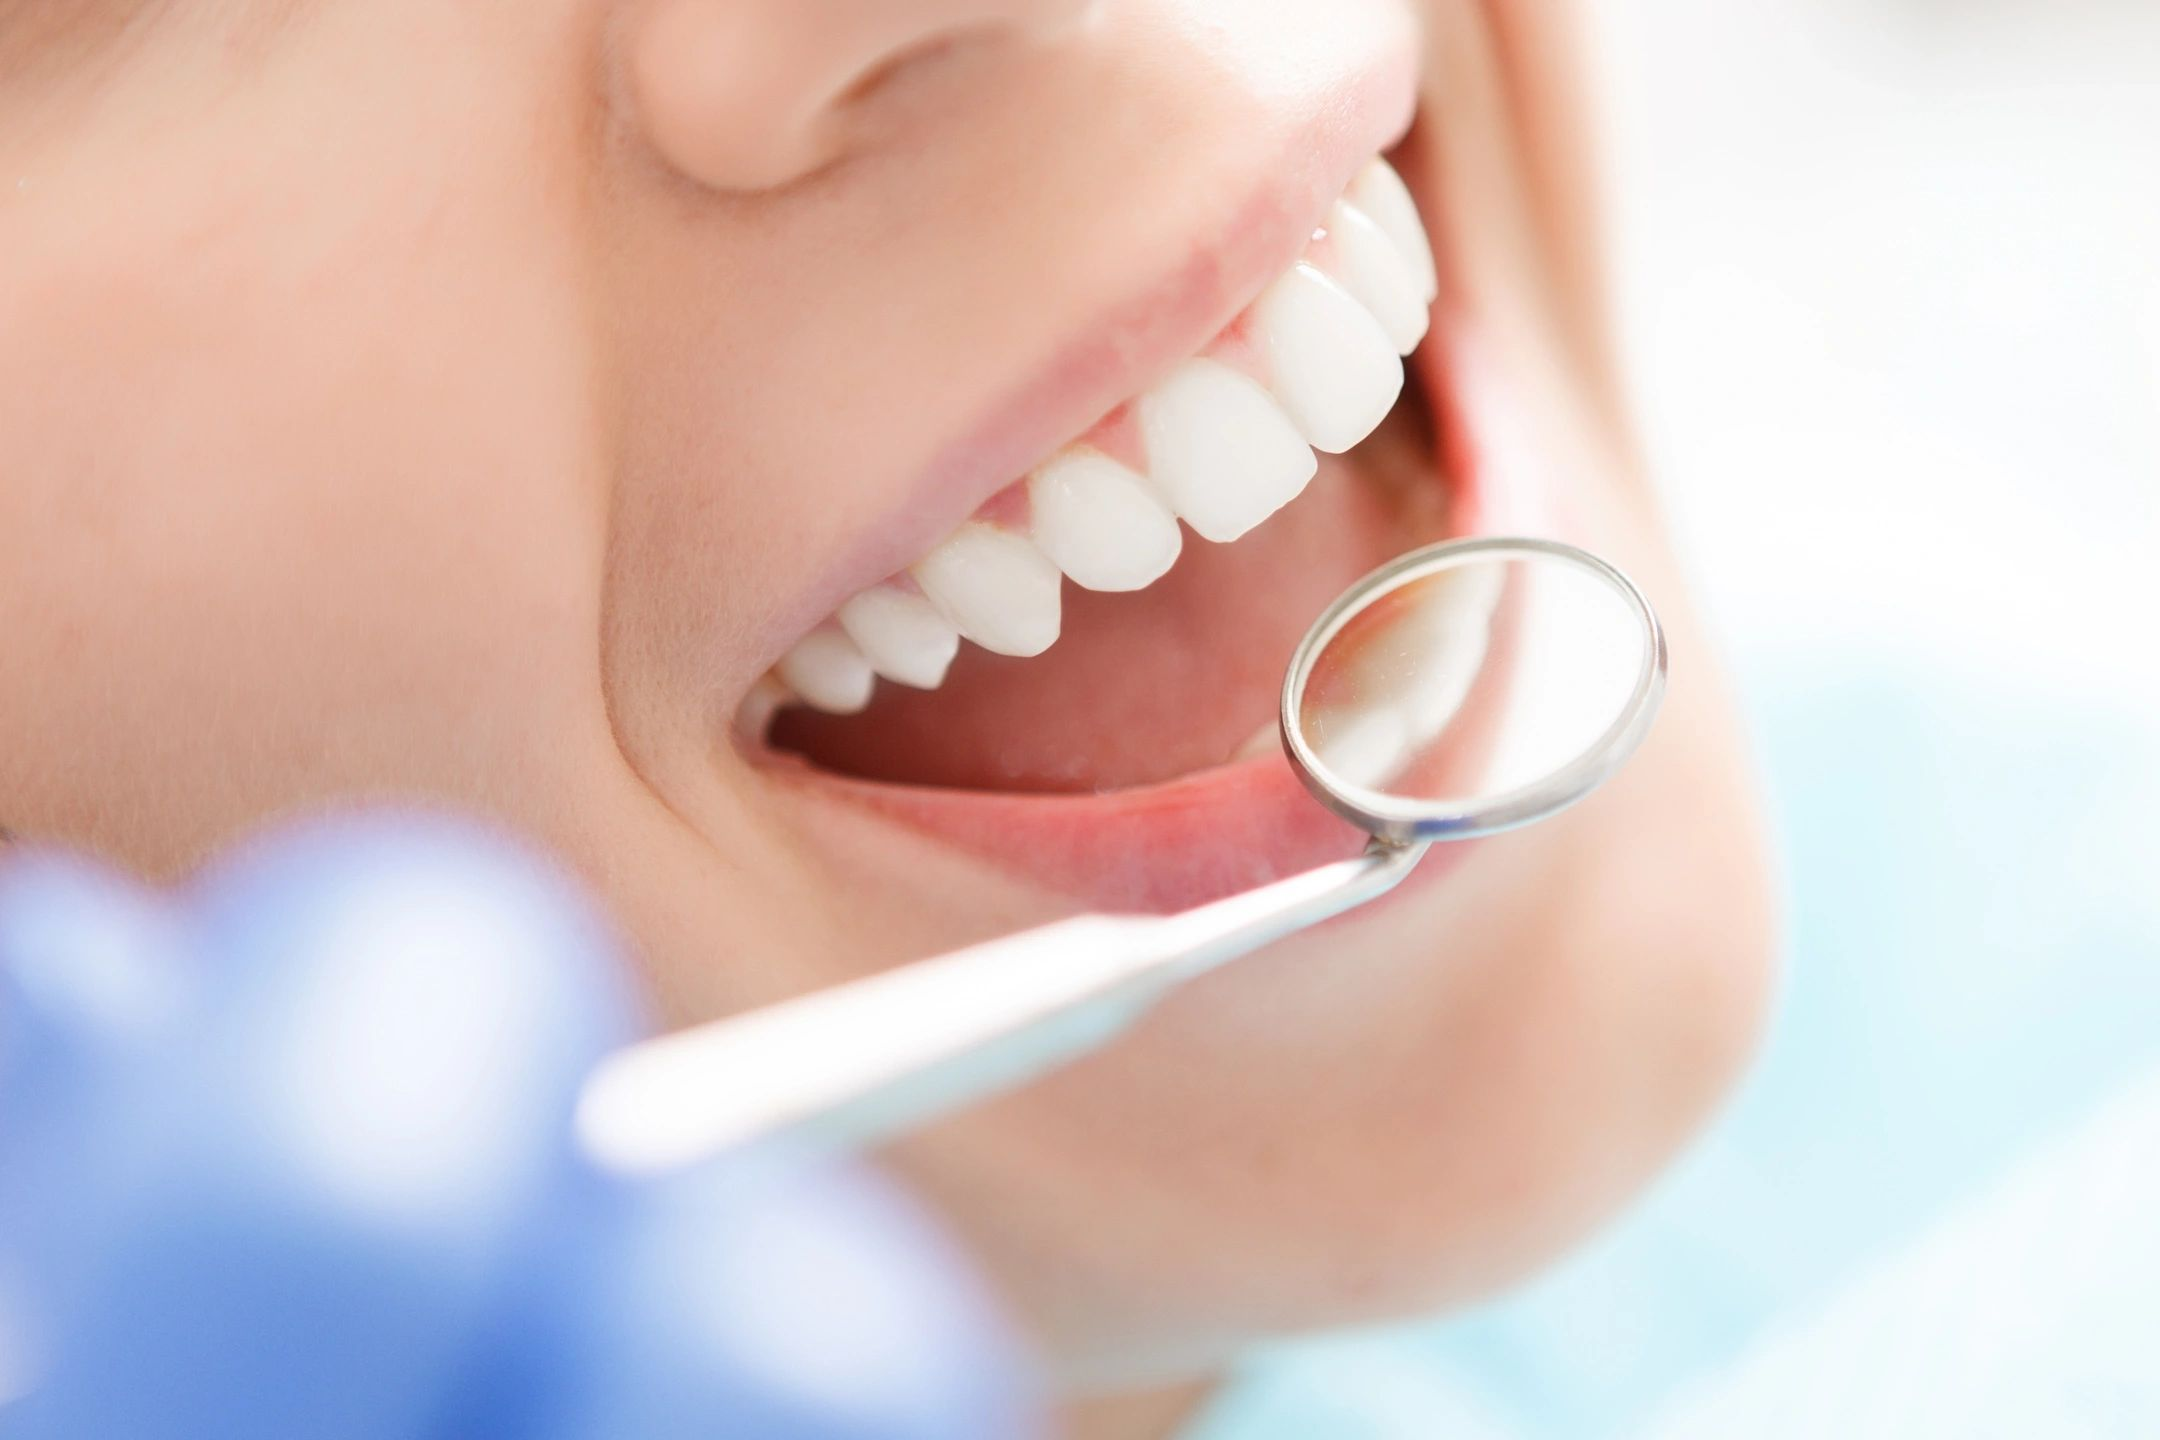 Dentist looking at perfect teeth with mirror instrument